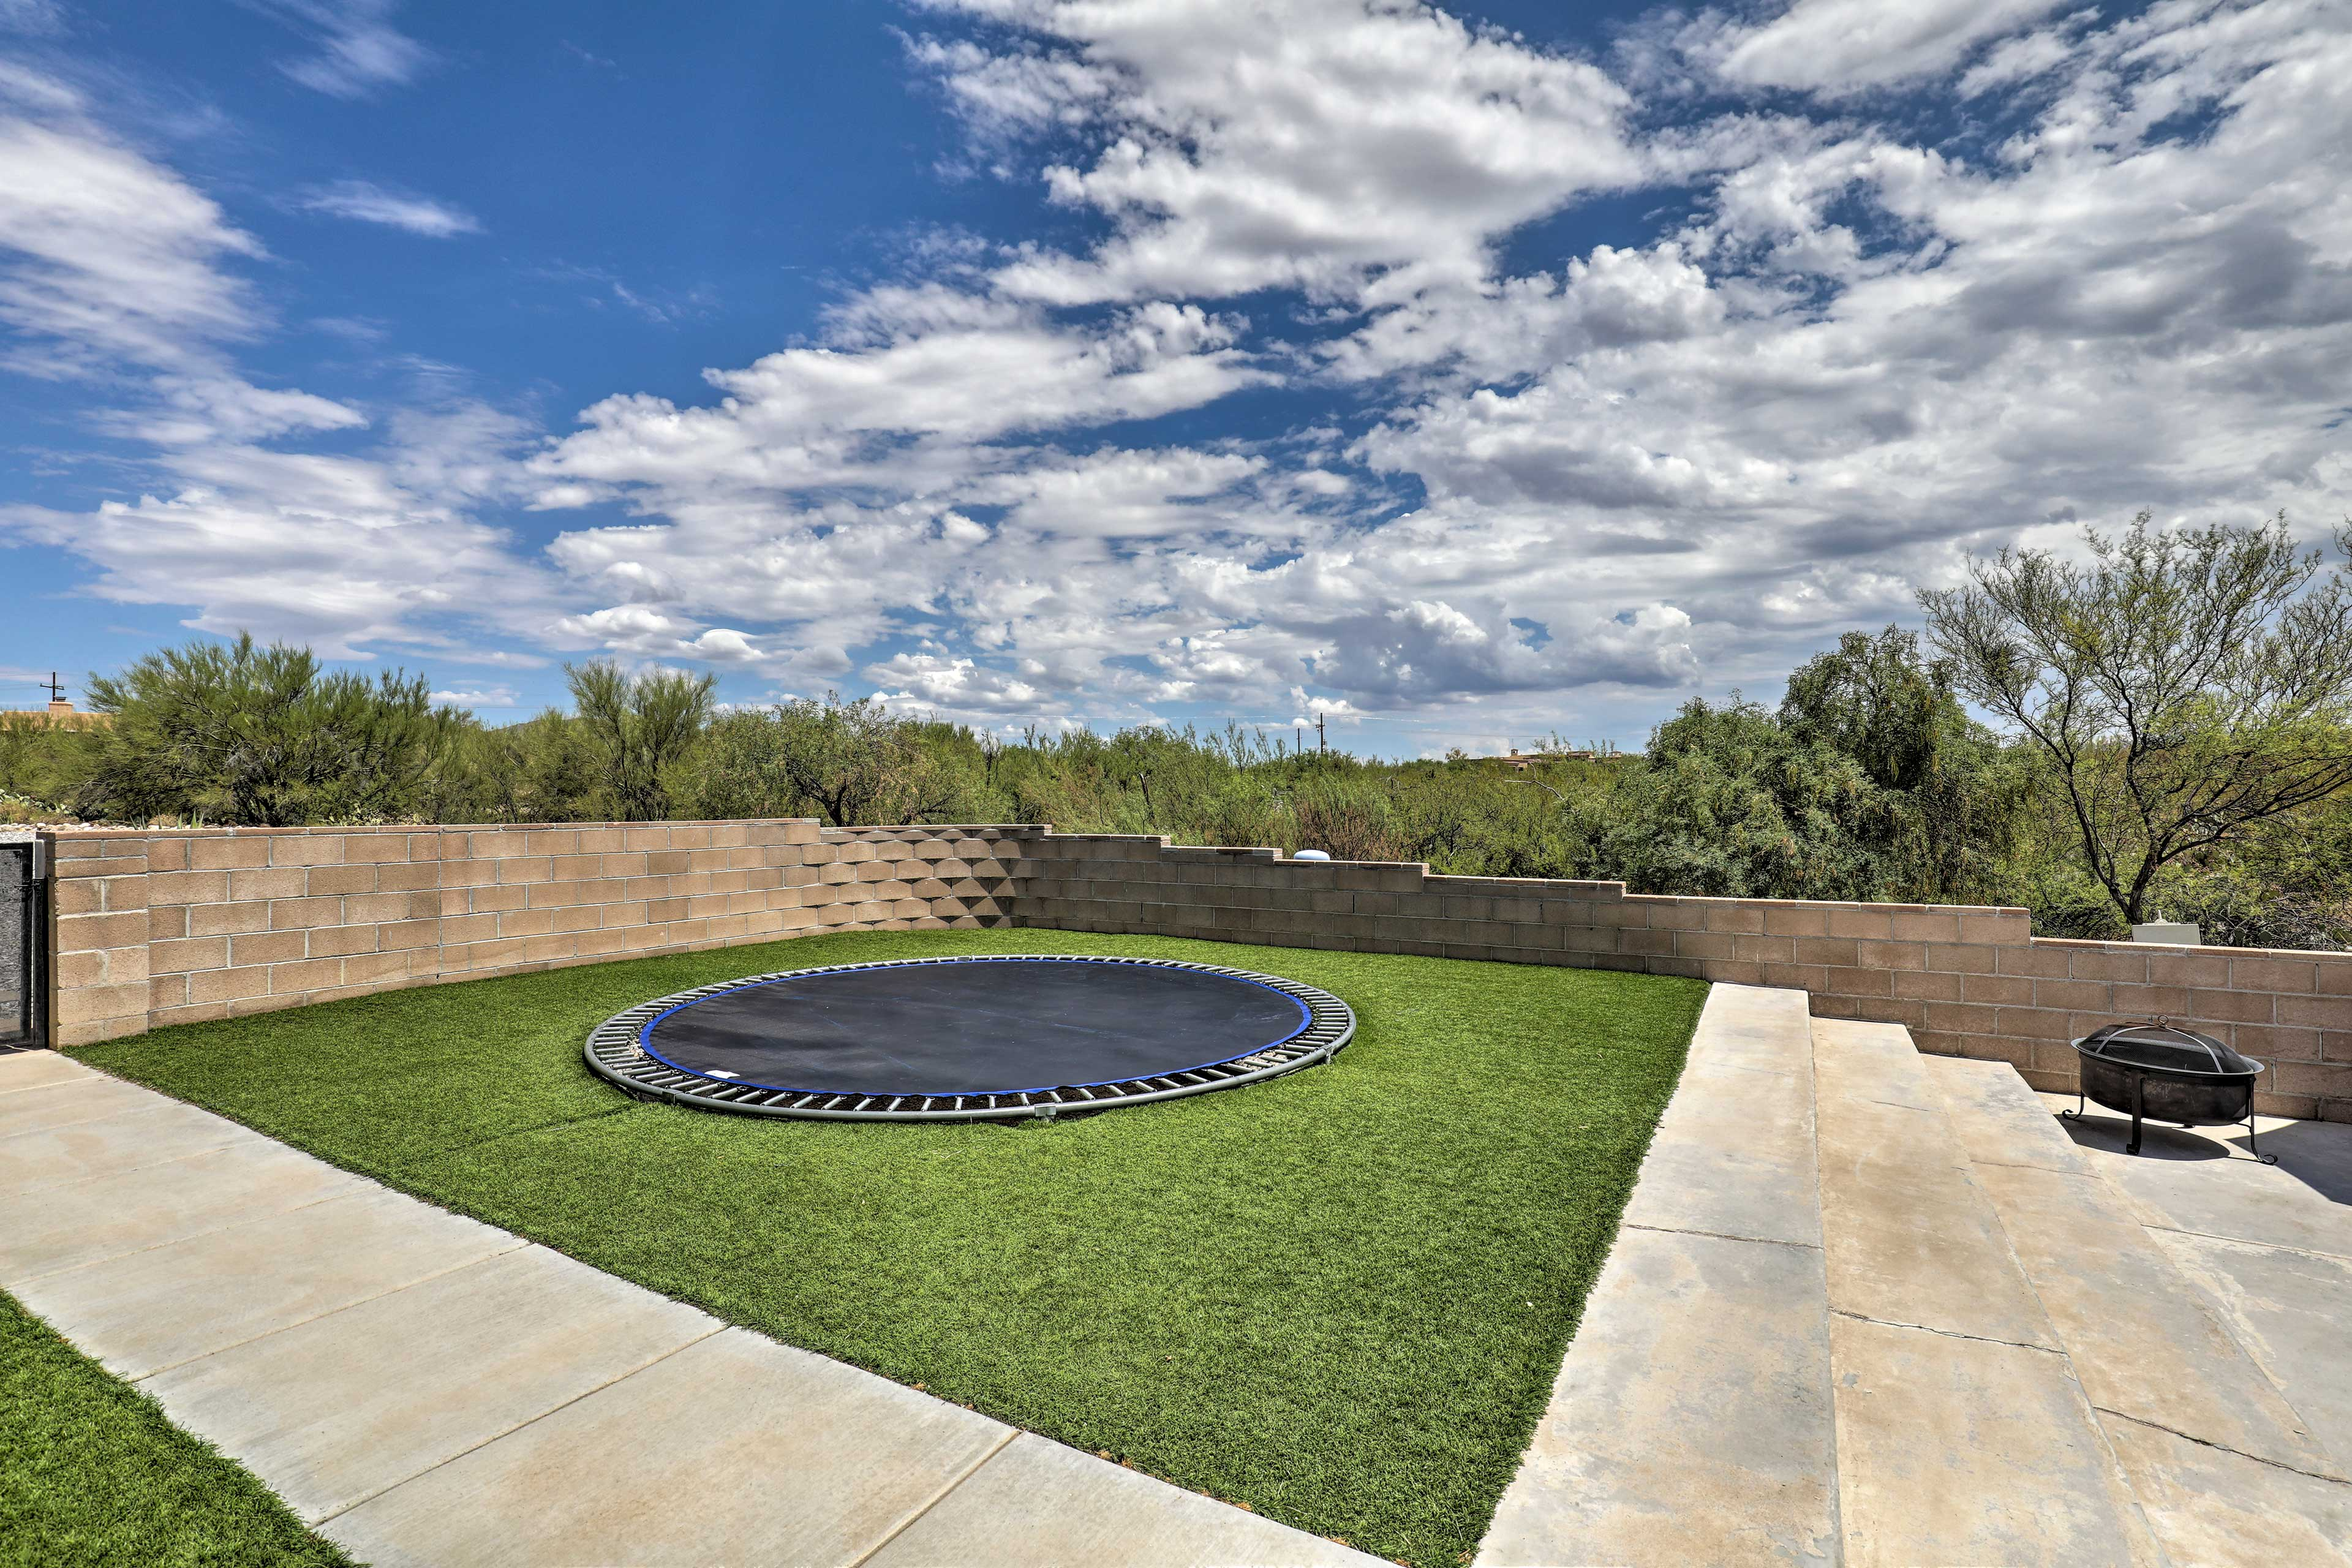 A crowd pleaser, the in ground trampoline will make anyone's day.